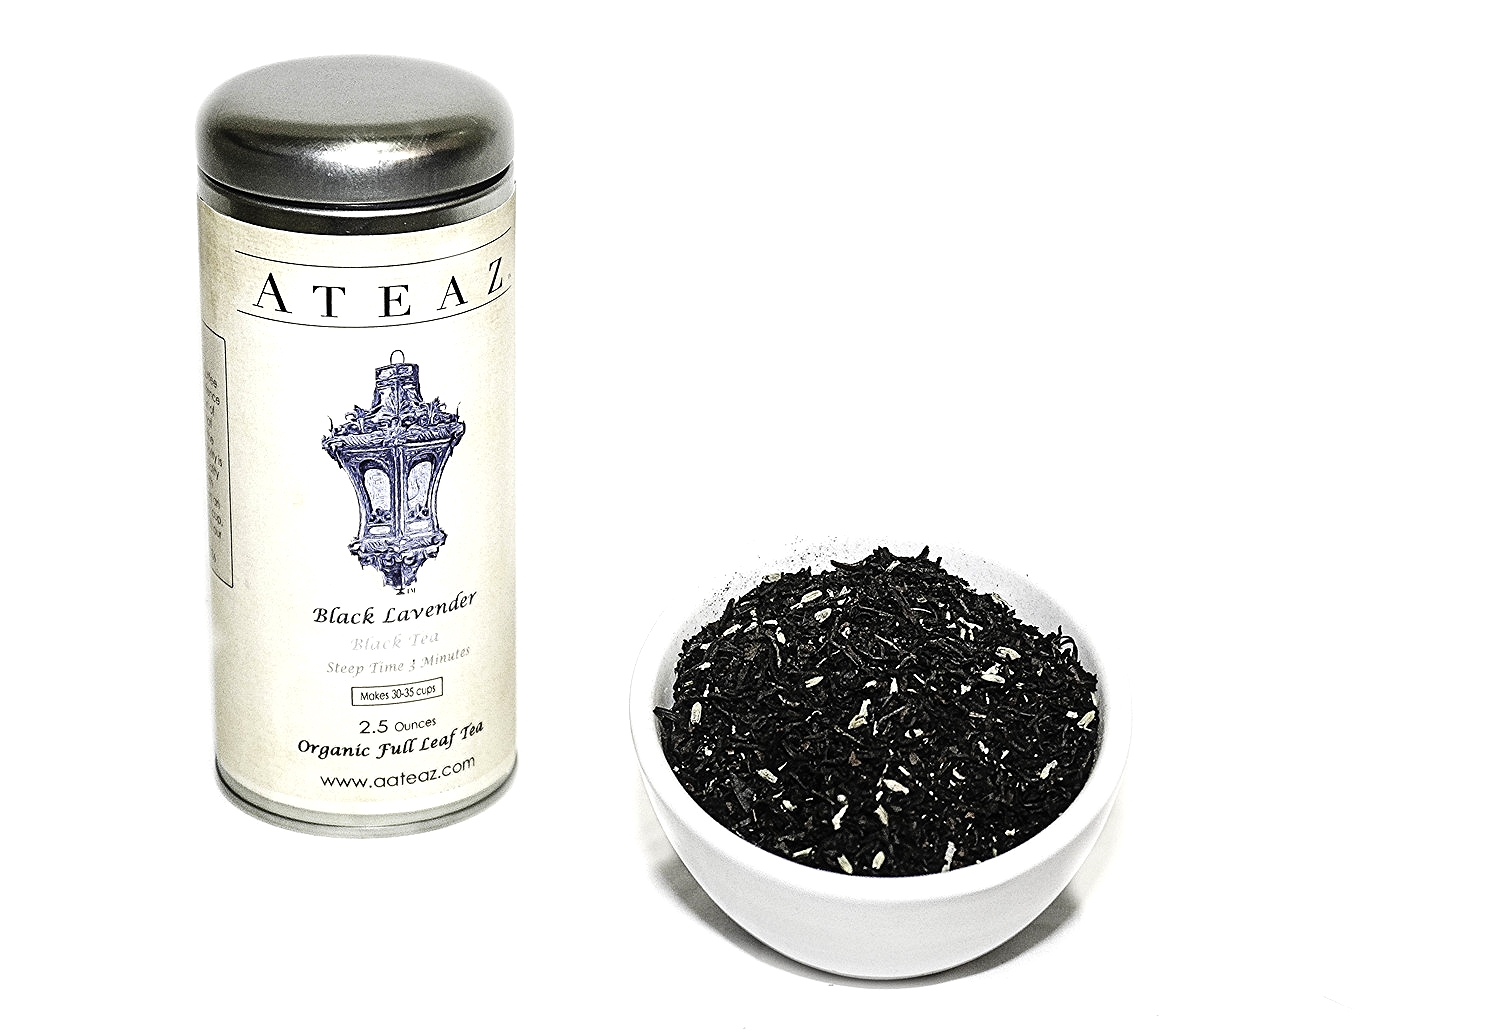 Try Our Black Lavender Black Tea With A Twist...